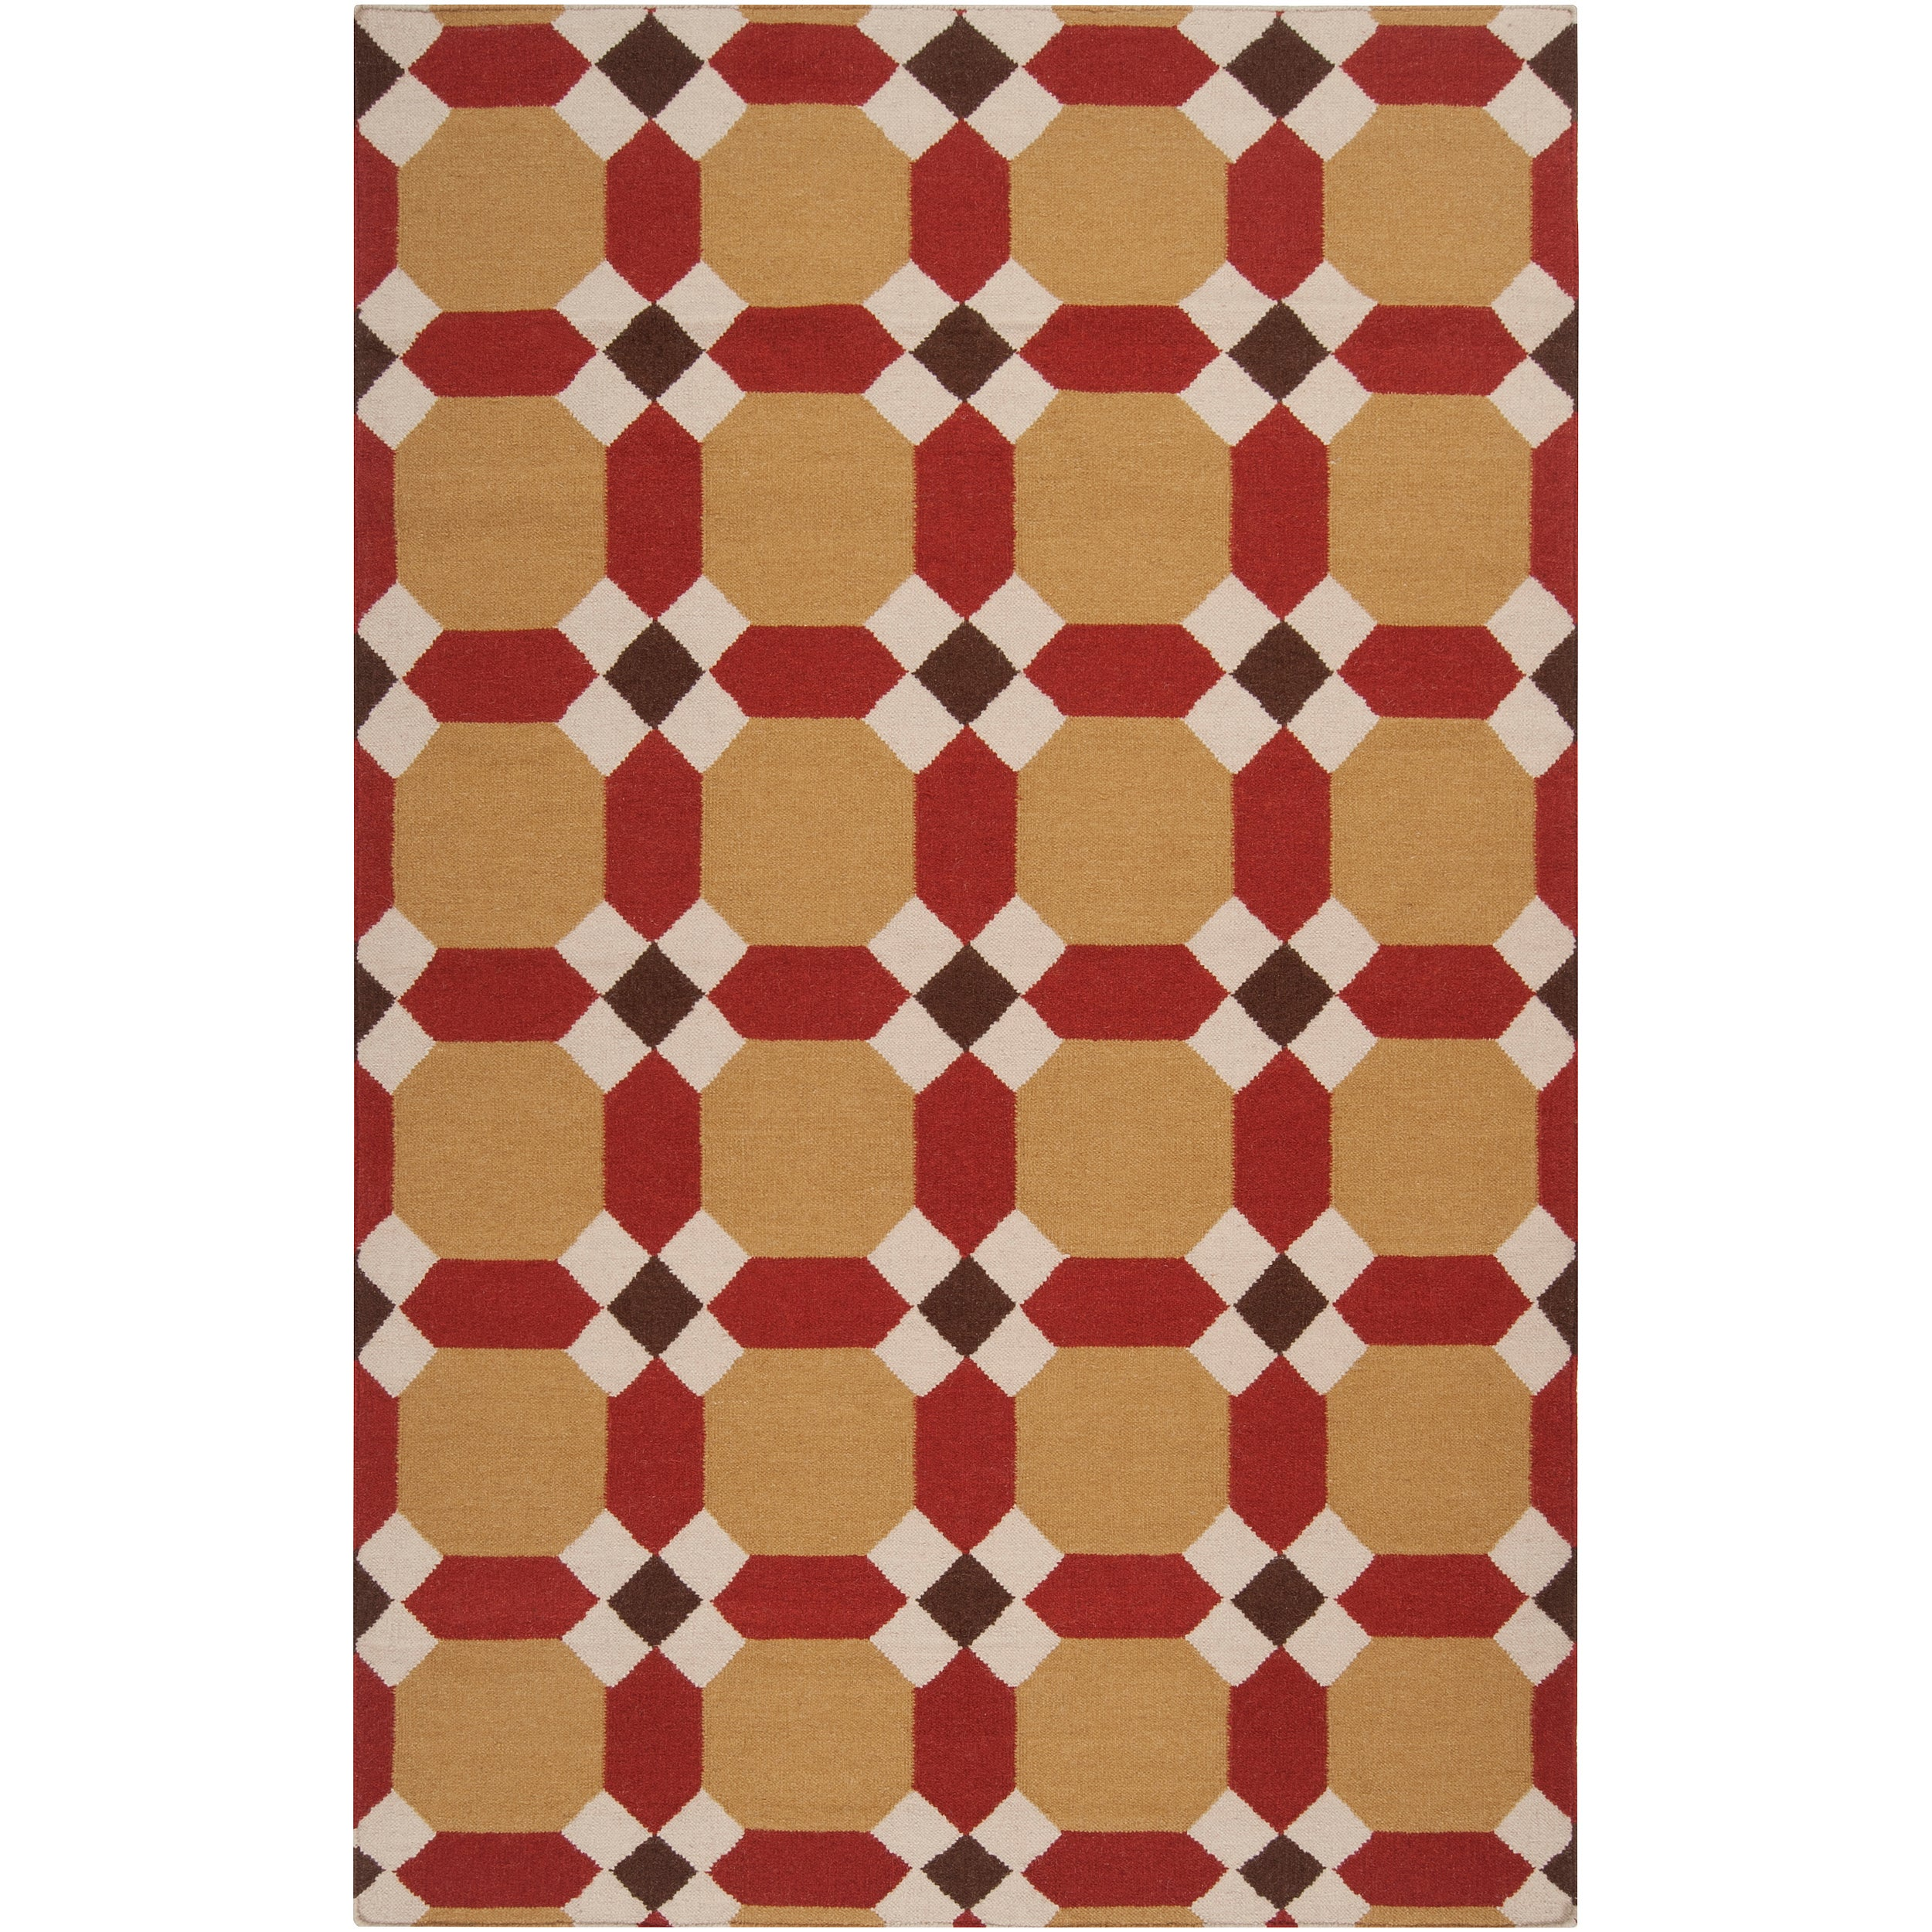 Smithsonian Handwoven Red Anchor Wool Area Rug (5' x 8')